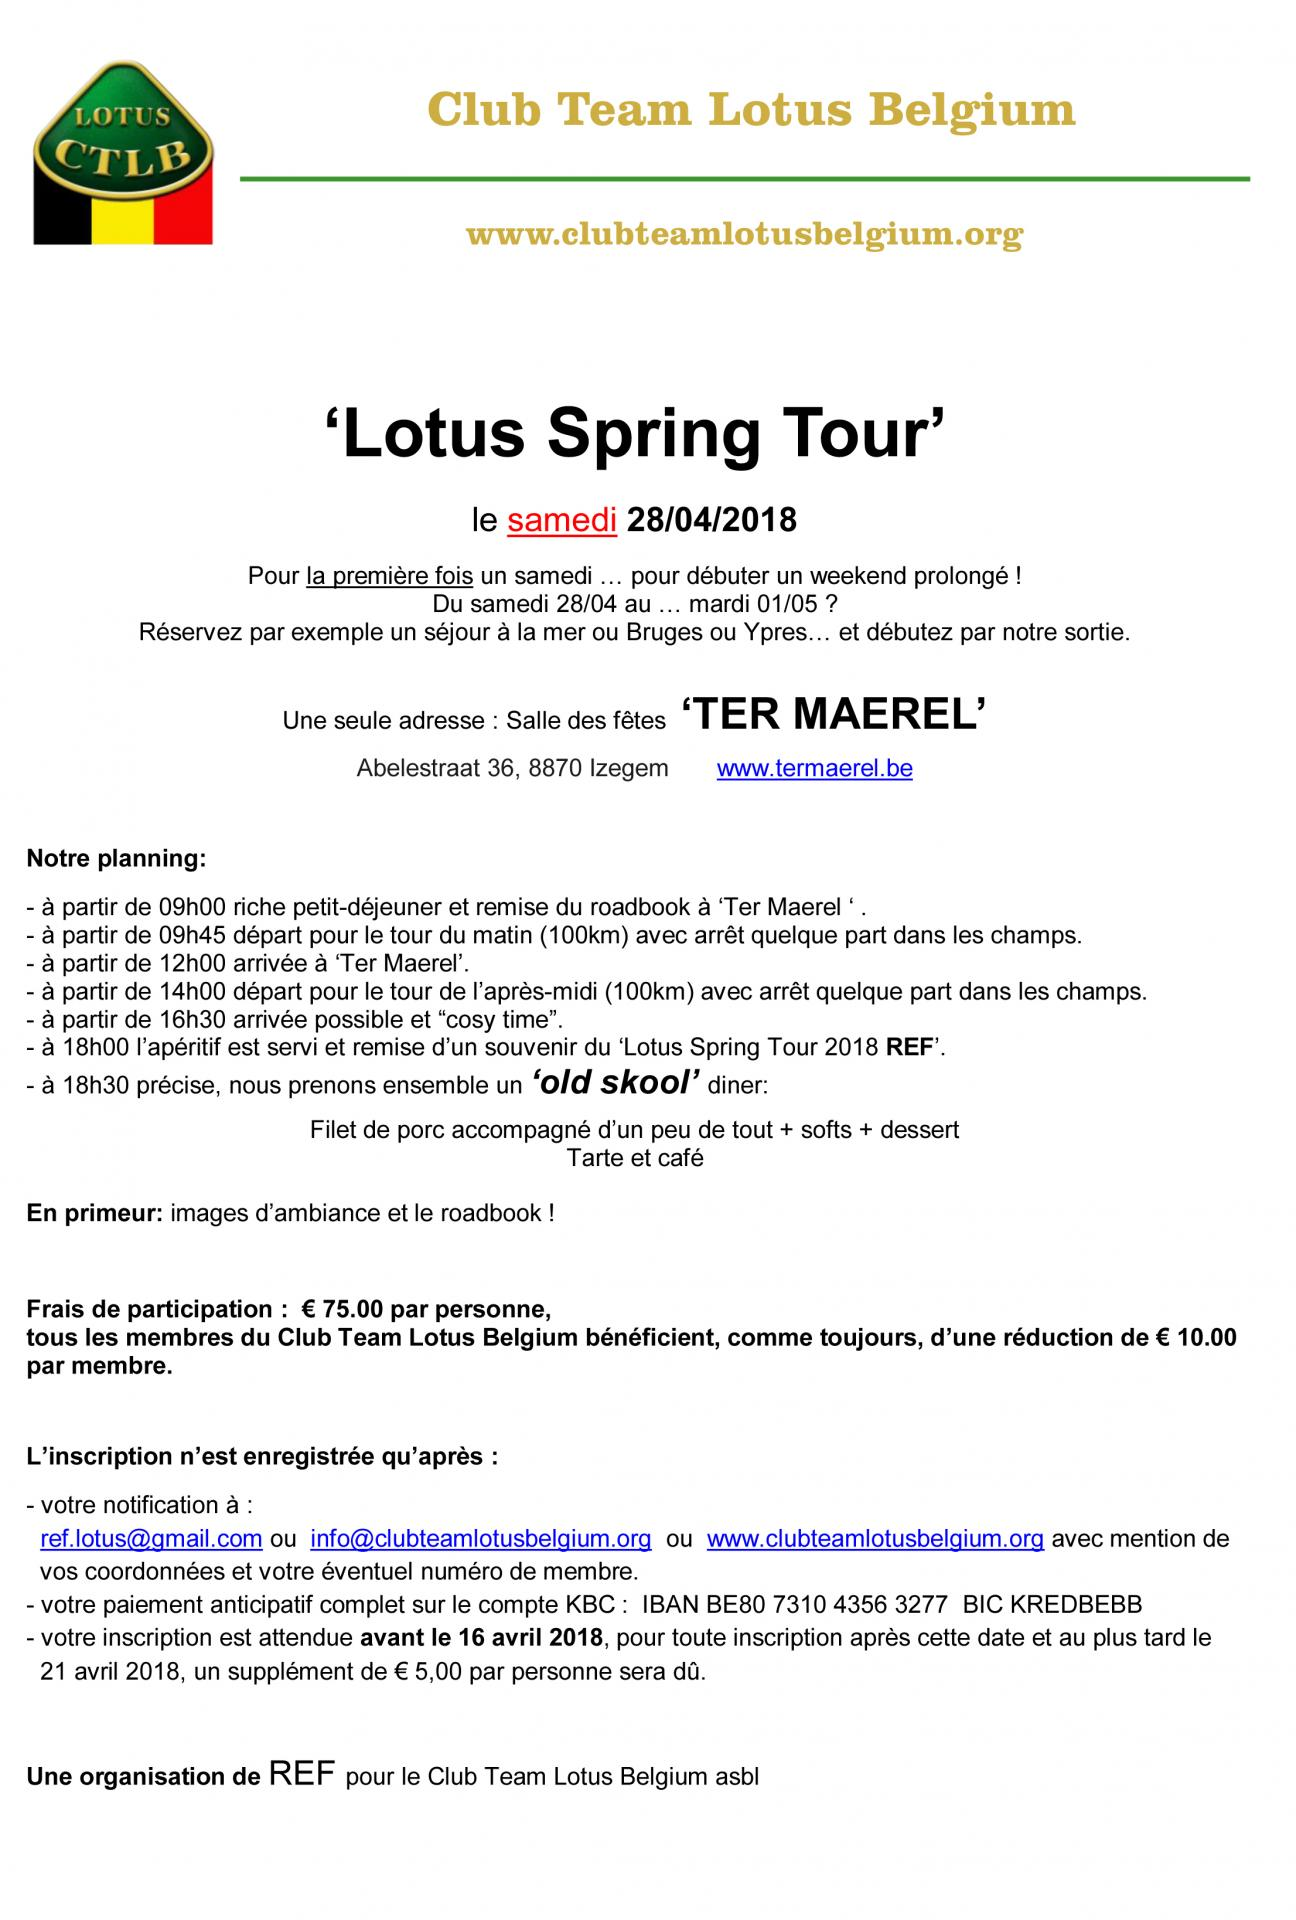 Lotus spring tour 2018 invitation